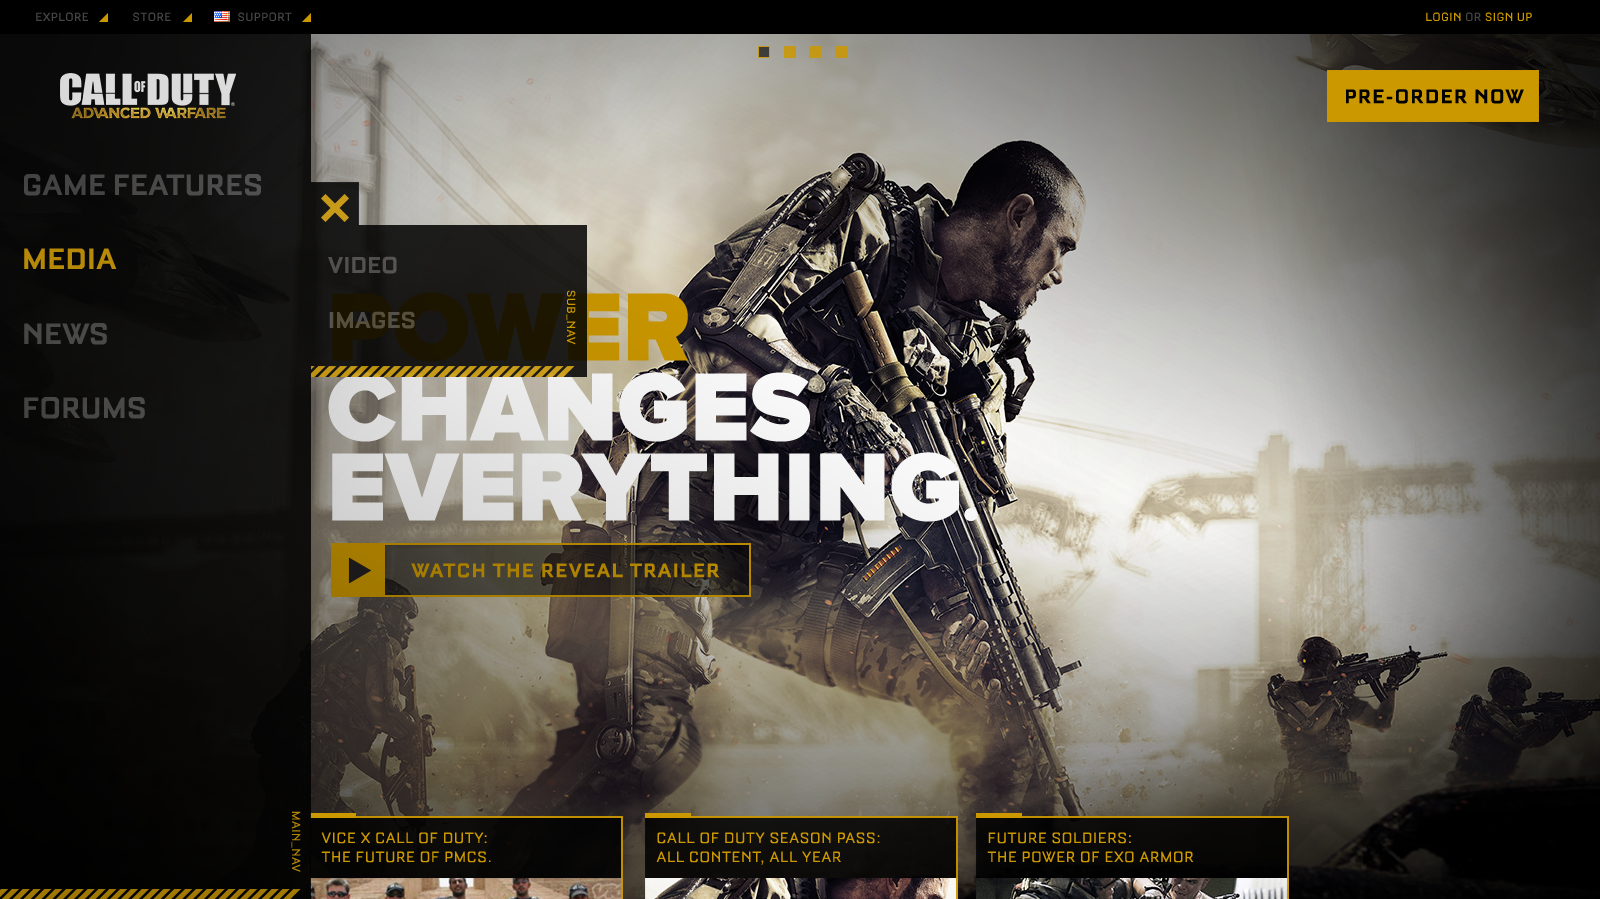 COD_AW_MAINSITE_0002_Home-Page-Sub-Nav.png